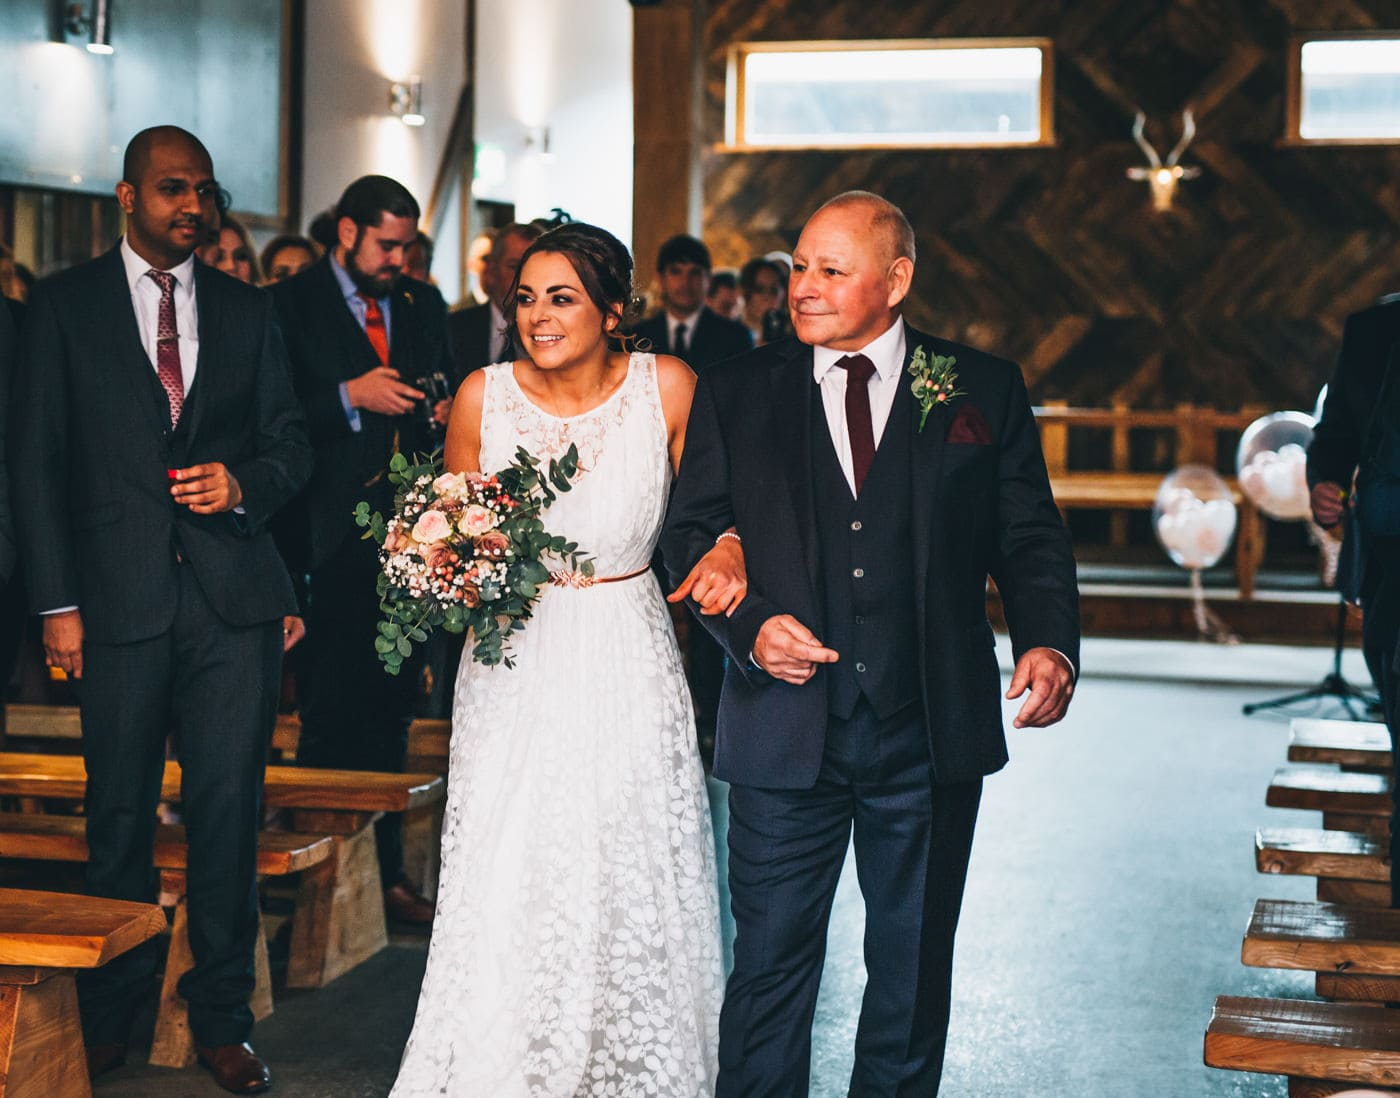 walking down the aisle - humanist ceremony at Owen House wedding barn